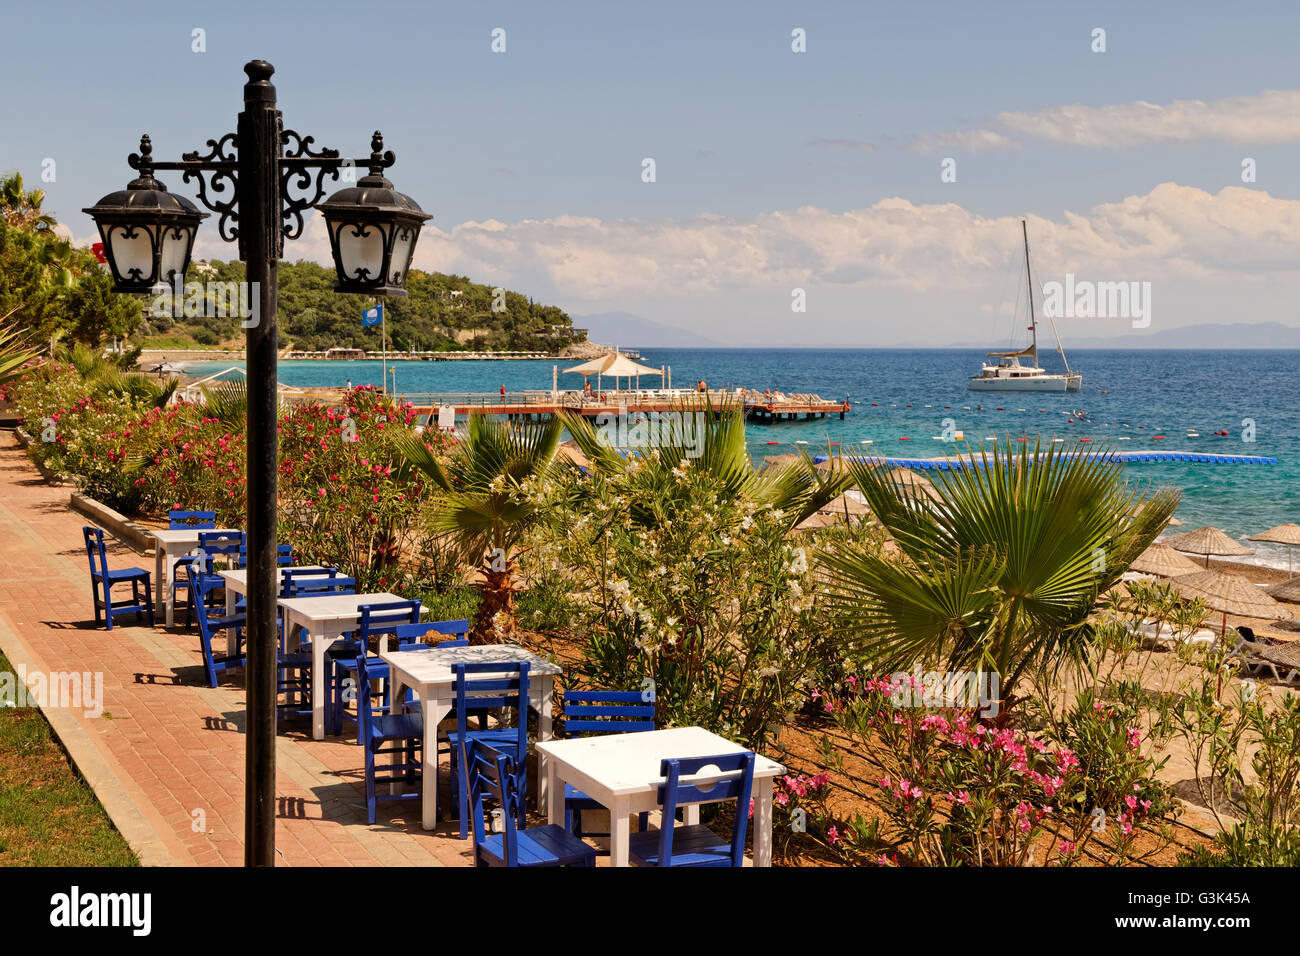 Yaliciftlik on the Bodrum Peninsula looking out to the Gulf of Gokova. - Stock Image